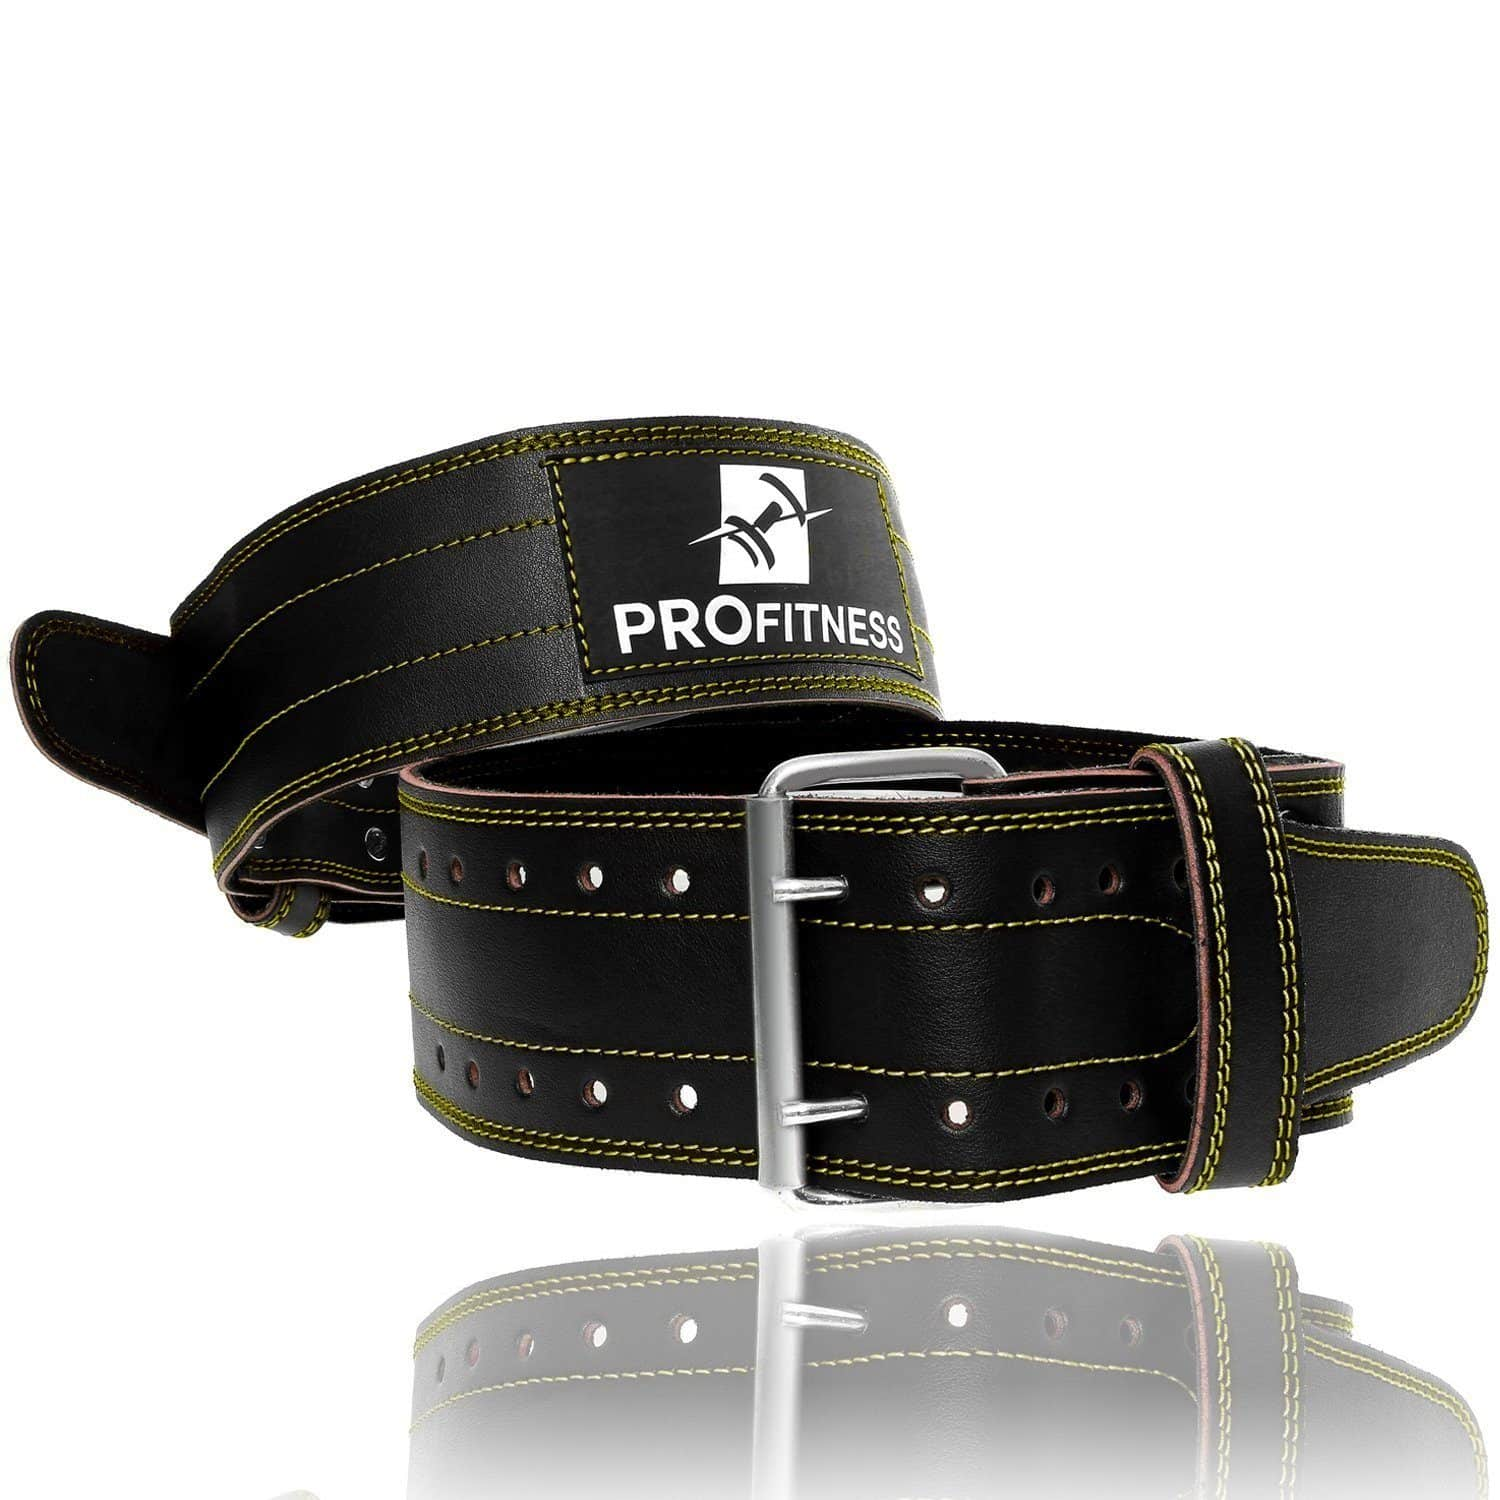 Pro Fitness Genuine Leather Workout Belt